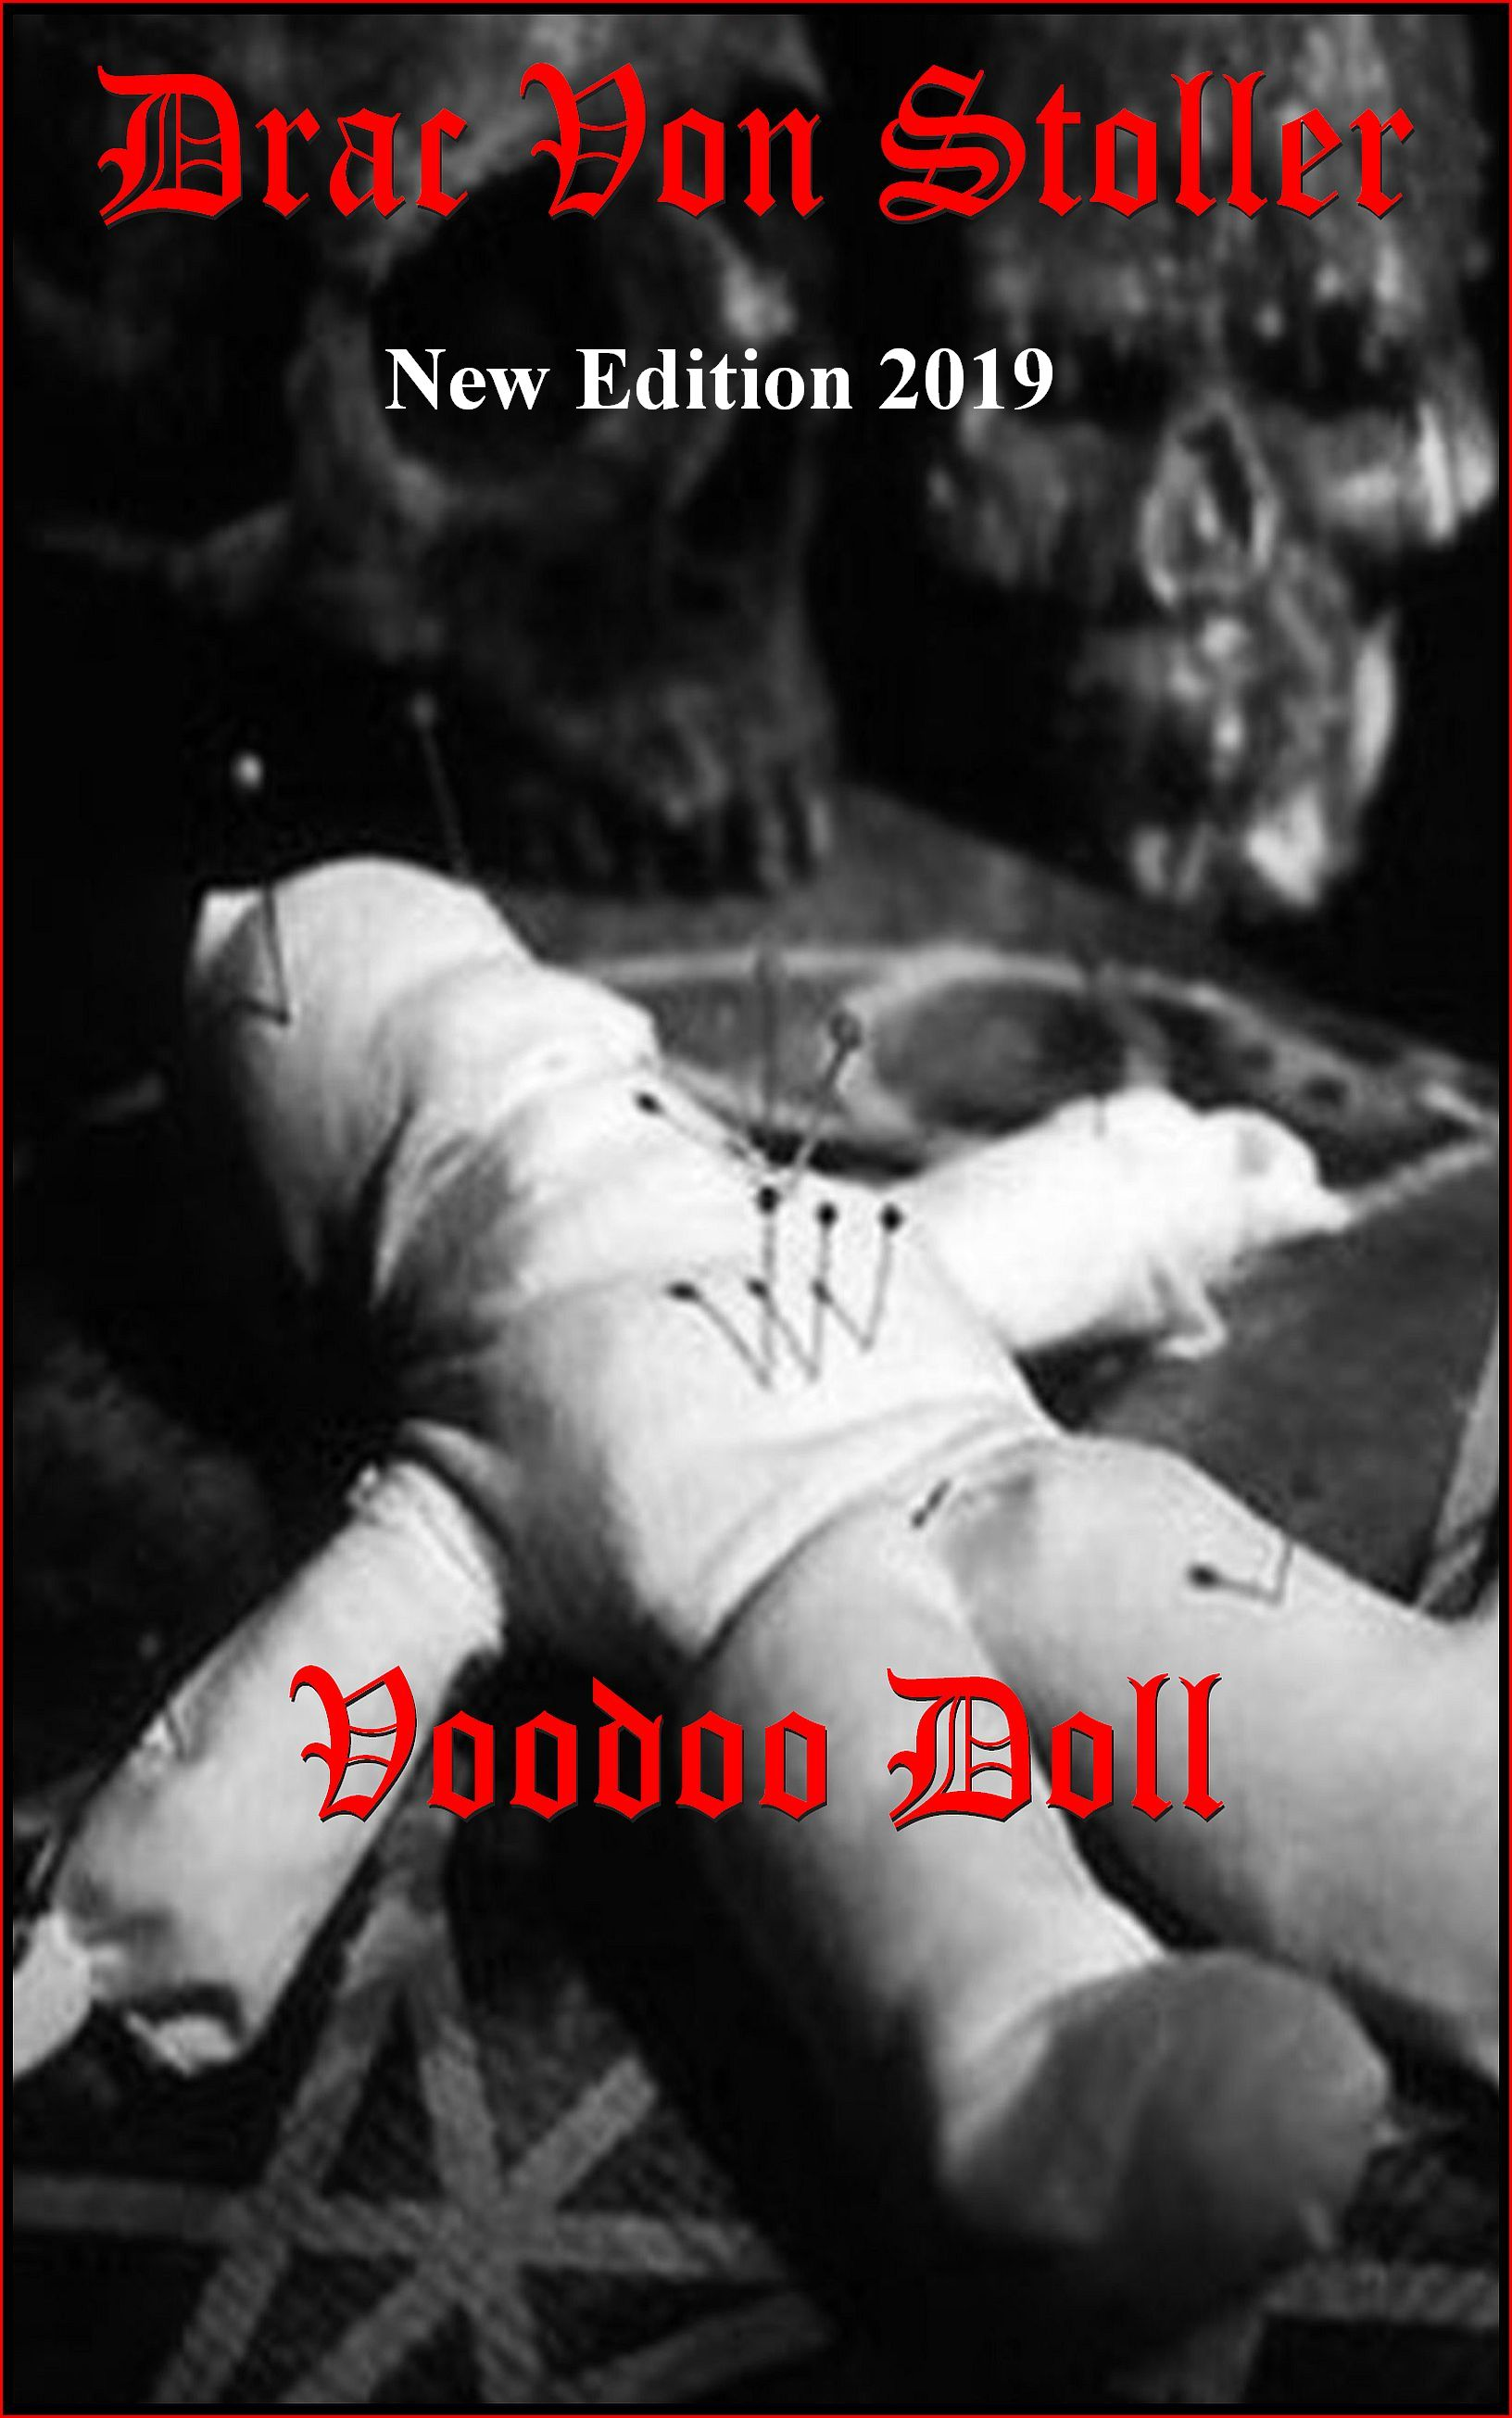 Smashwords – Voodoo Doll – a book by Drac Von Stoller